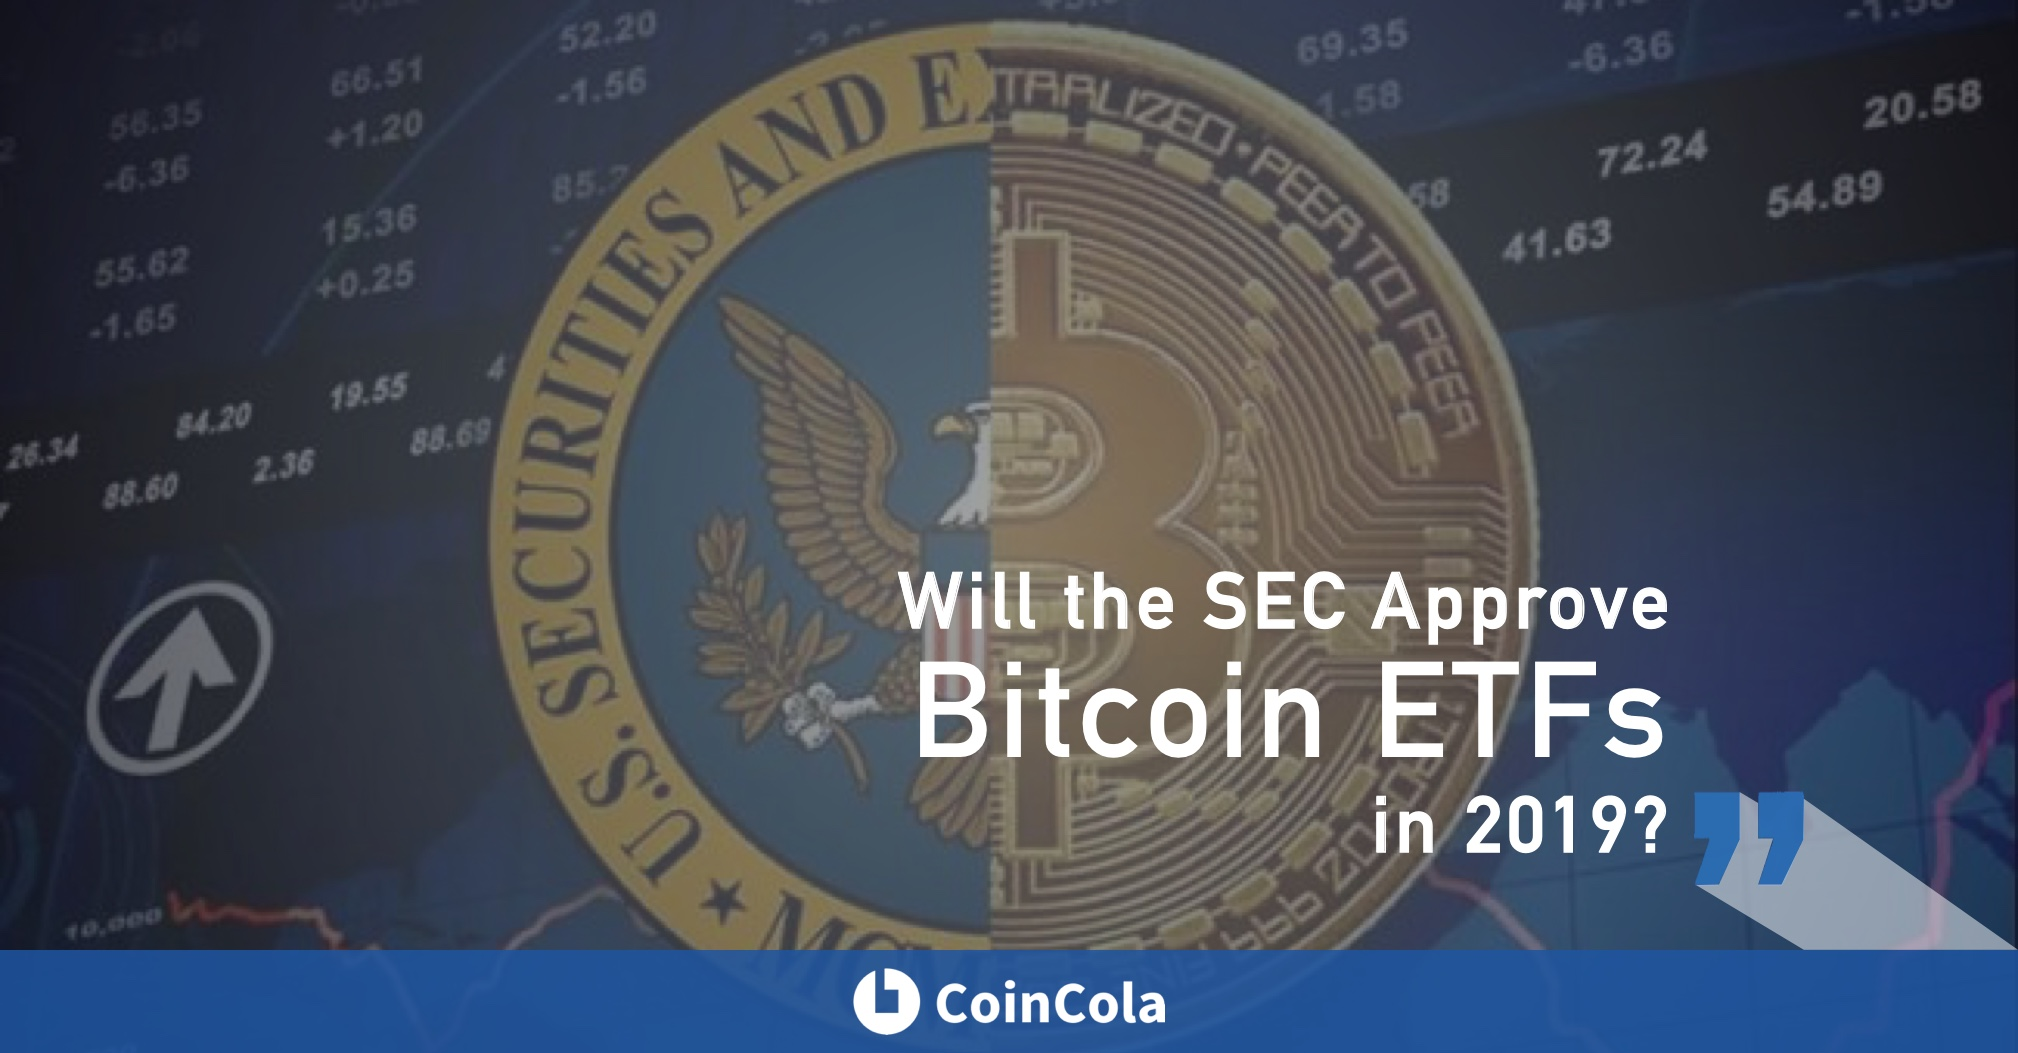 Will the sec approve Bitcoin ETFs in 2019